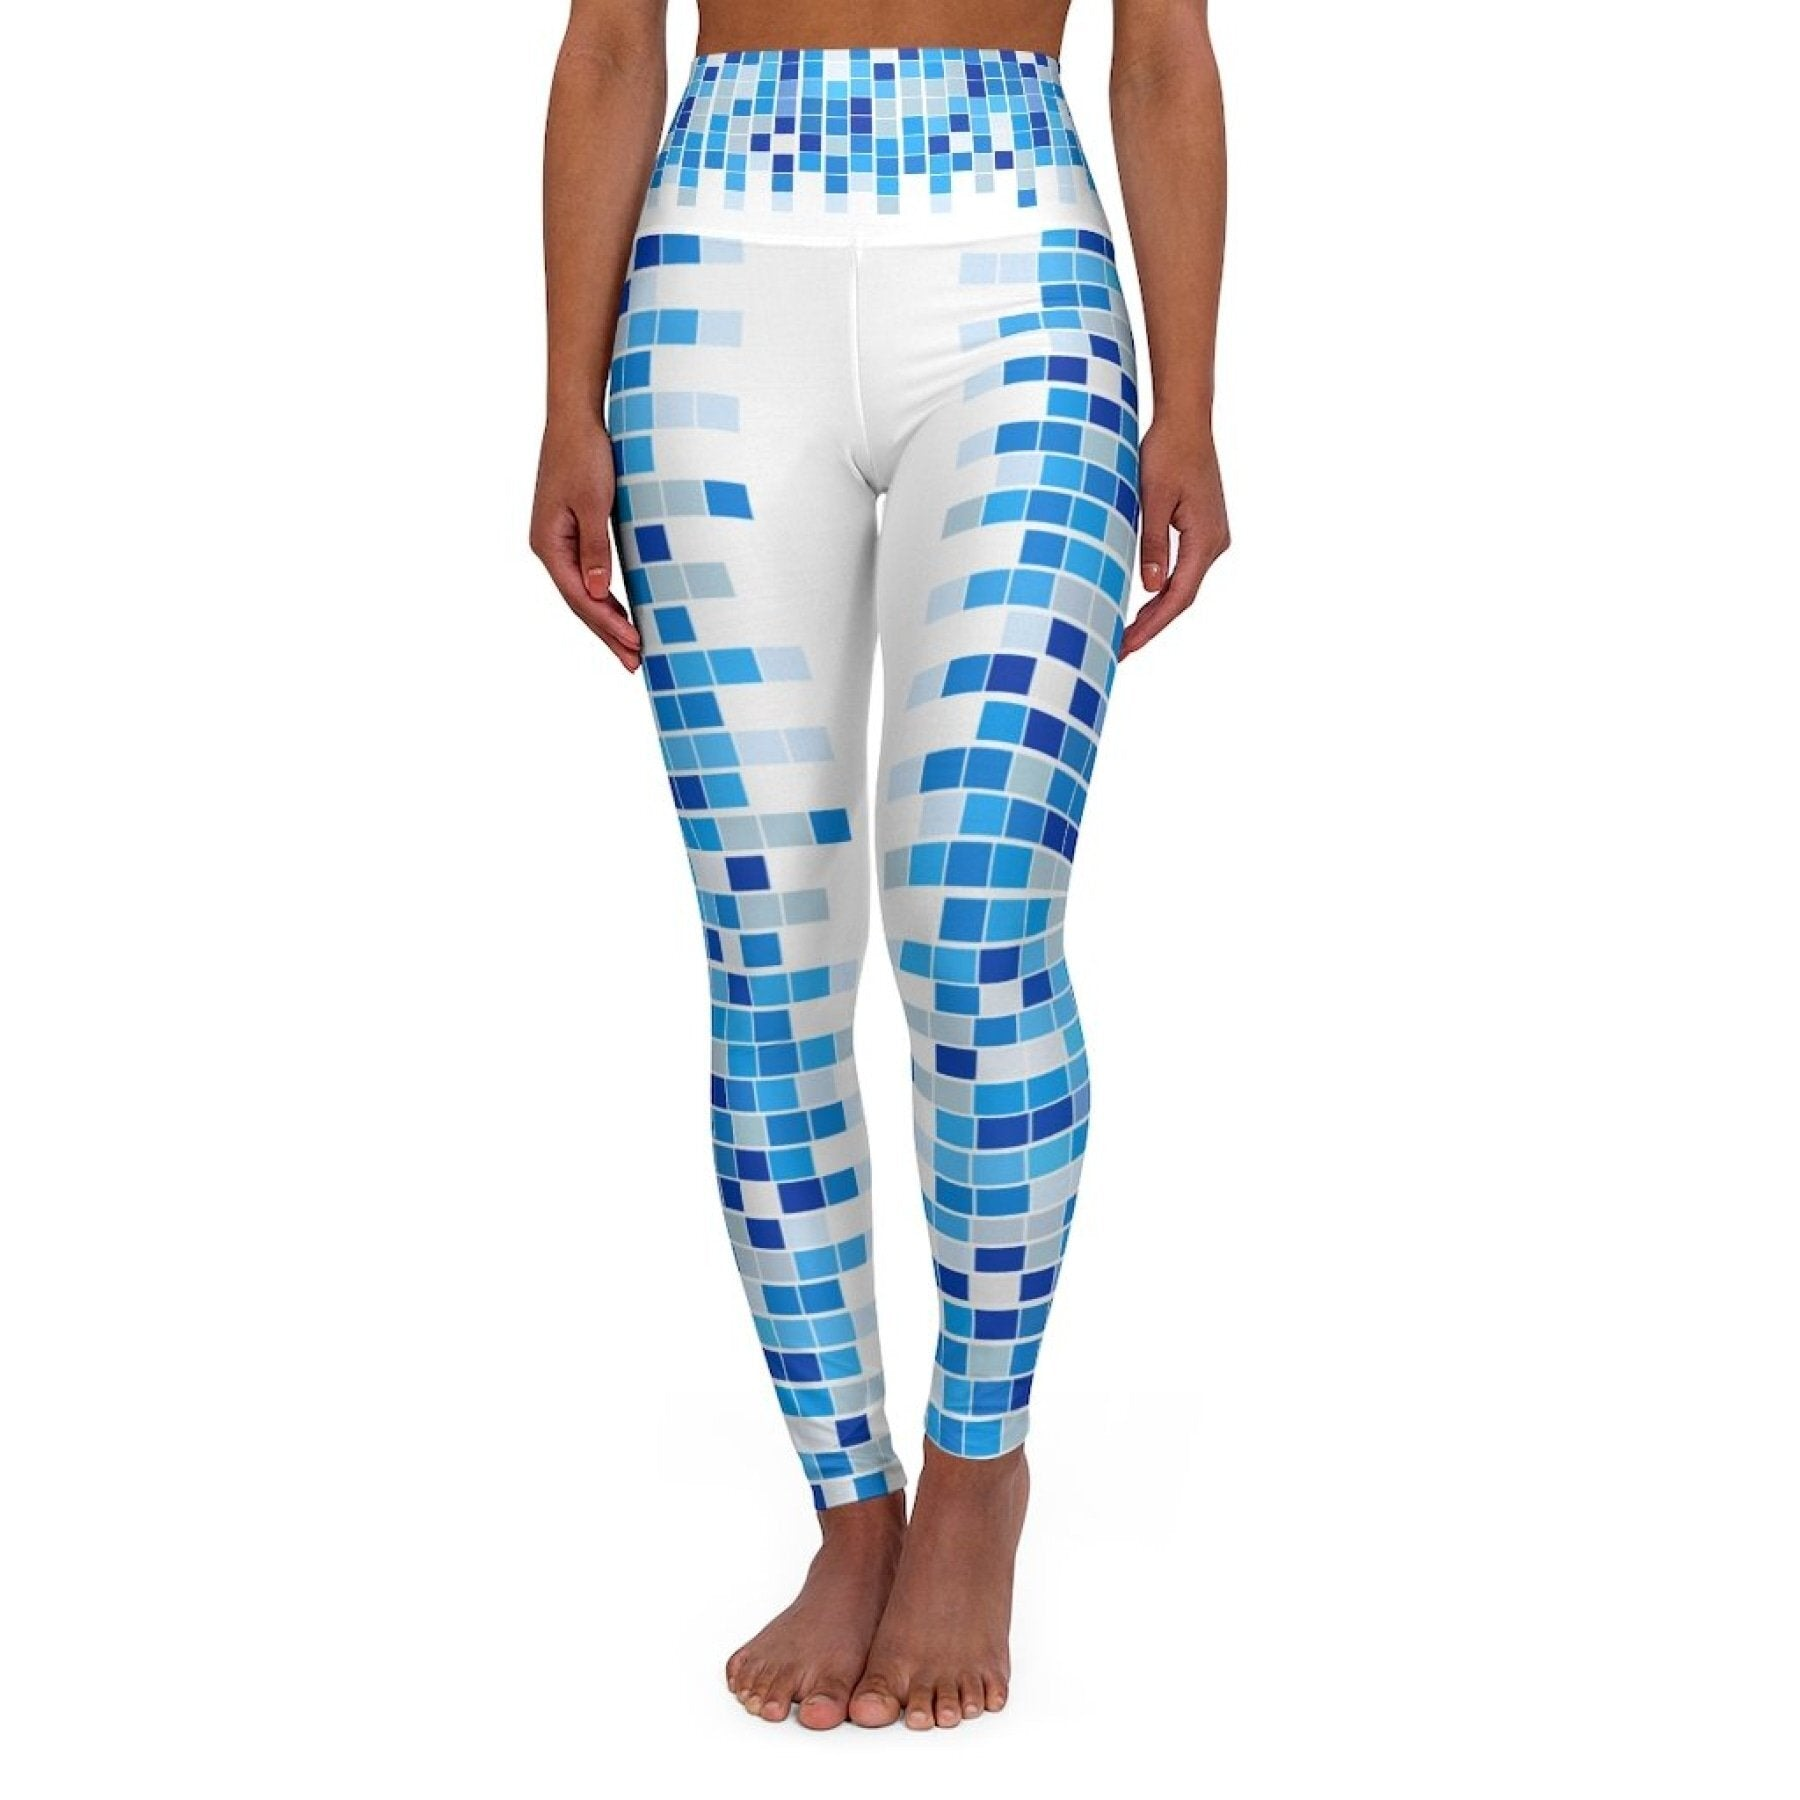 High Waisted Yoga Leggings, Blue and White Mosaic Square Style Pants